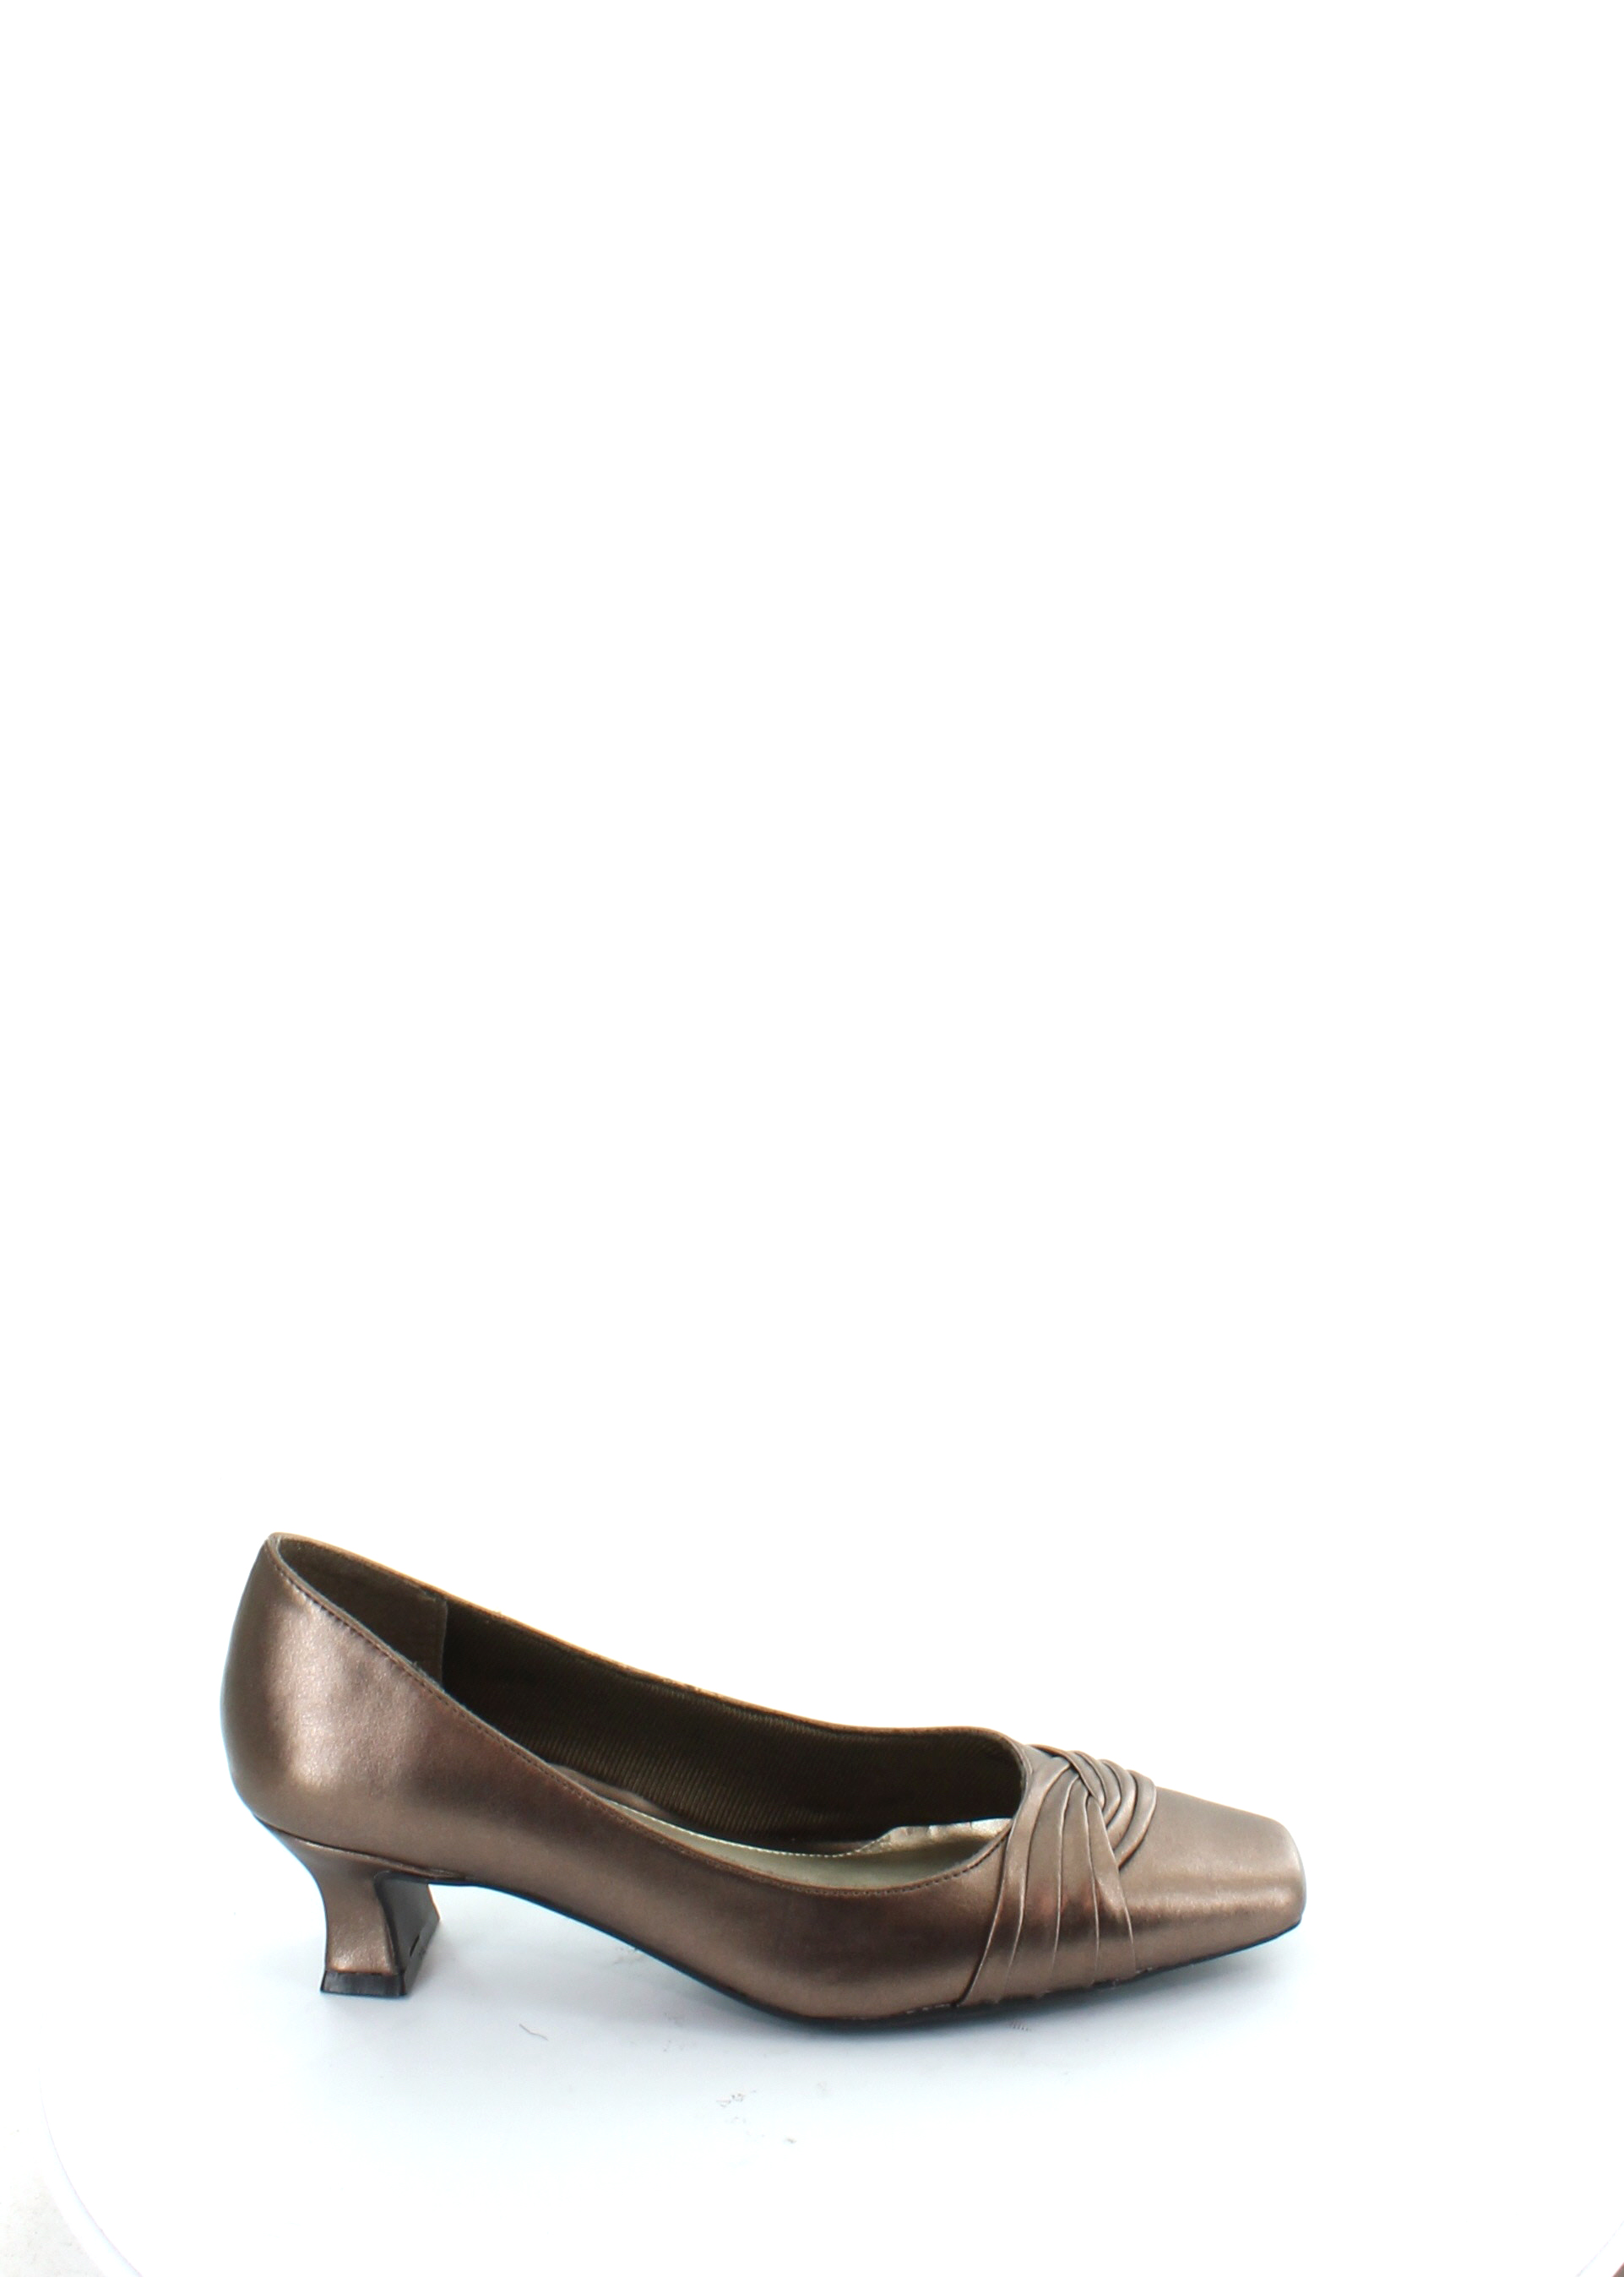 Details about Easy Street New Tidal Metallic Womens Shoes Size 7.5 m